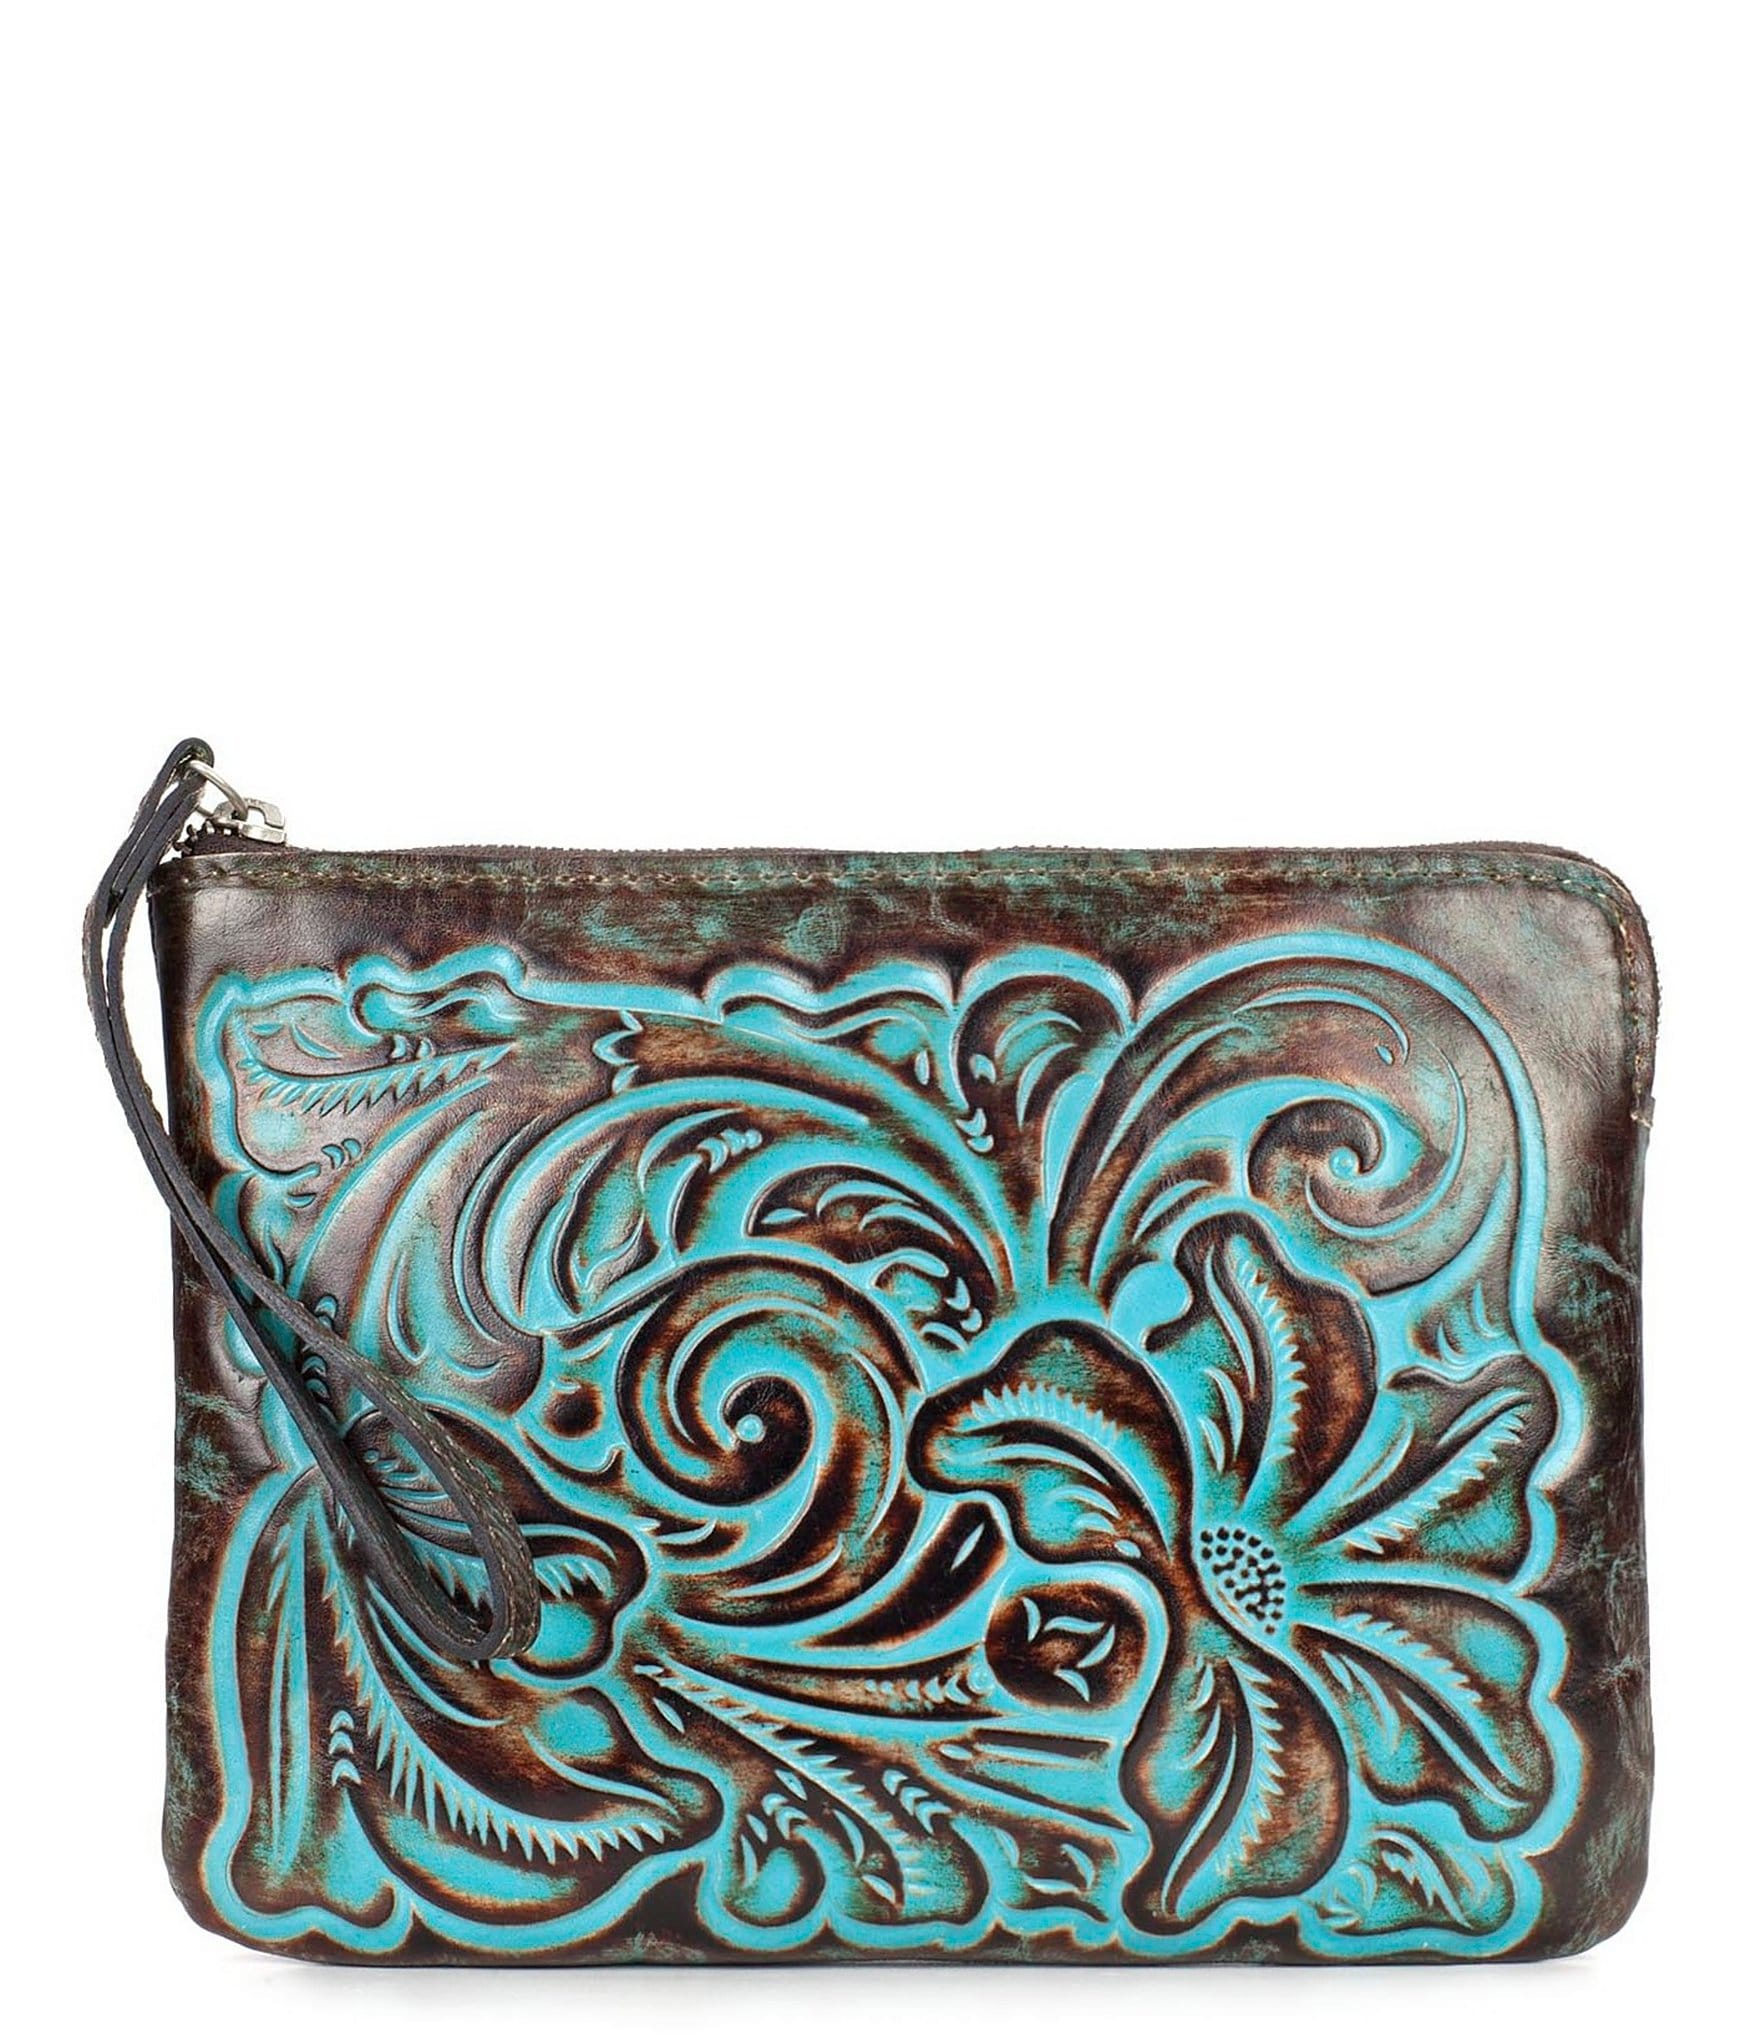 patricia nash tooled turquoise collection cassini floral